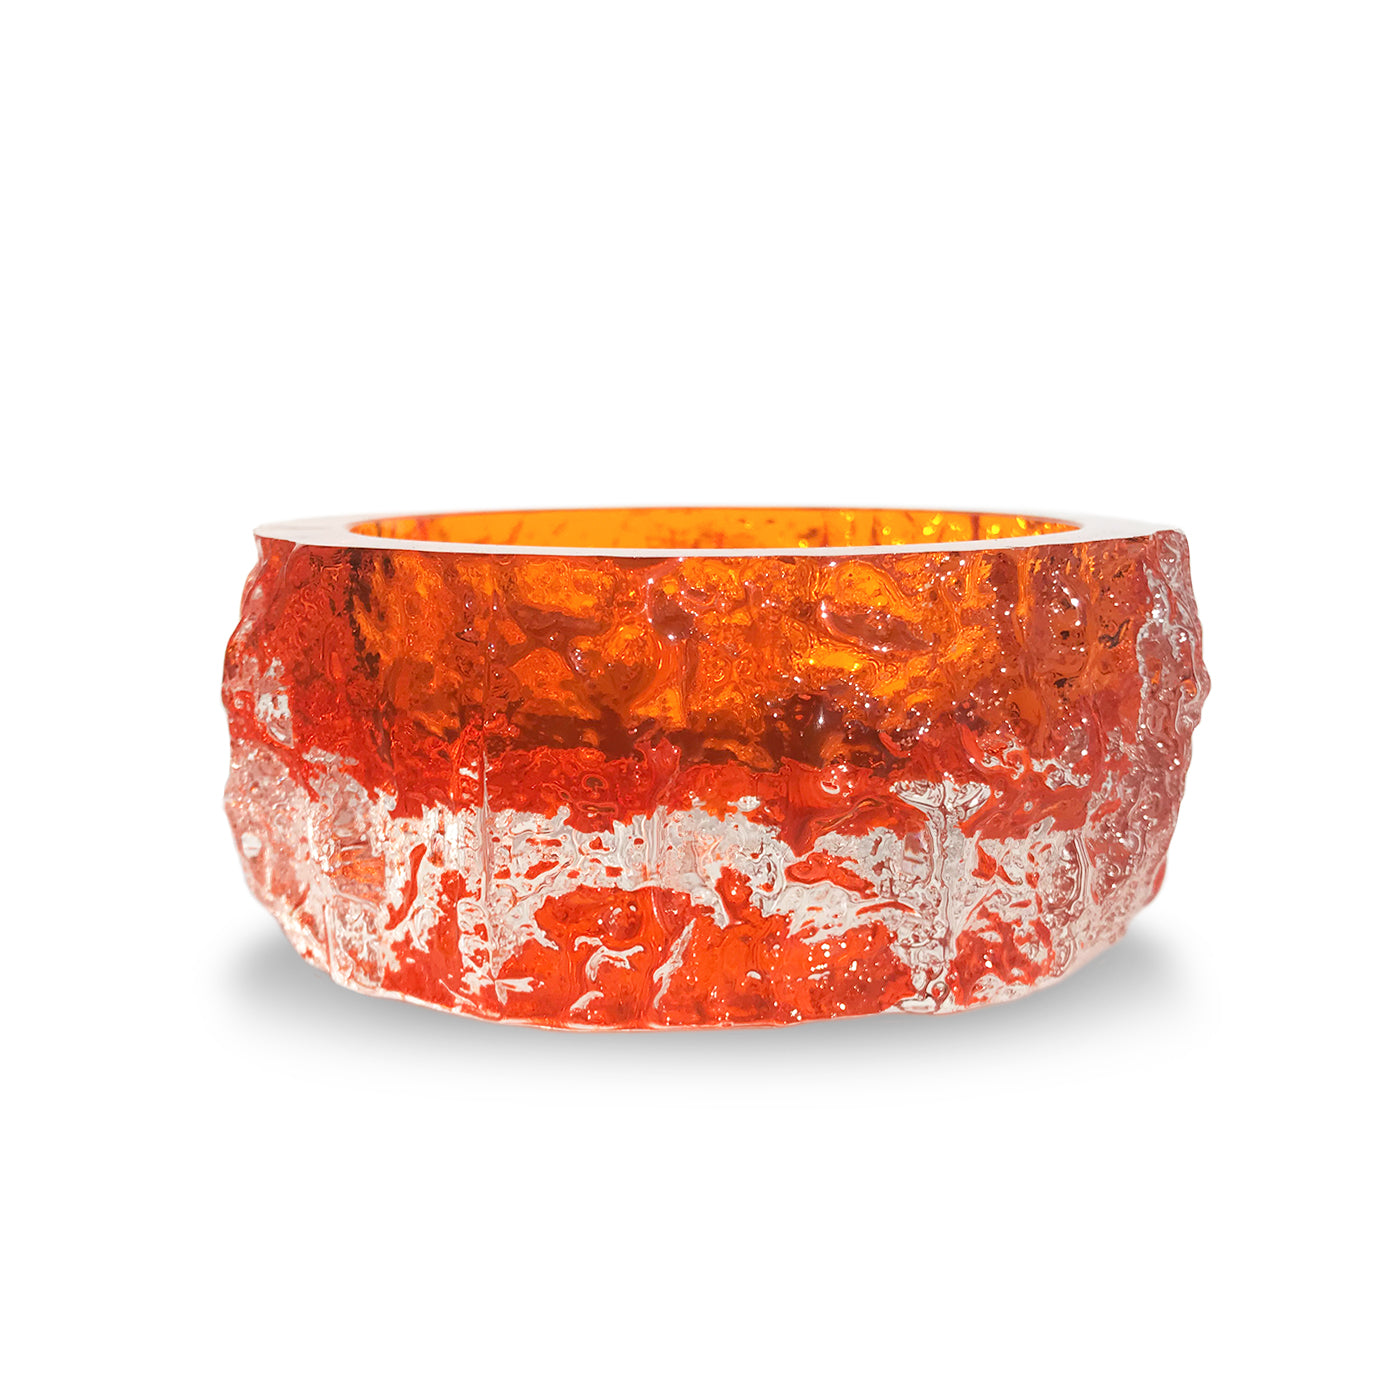 Whitefriars tangerine bark bowl, from the 'Textured' range, designed by Geoffrey Baxter - SHOP NOW - www.intovintage.co.uk